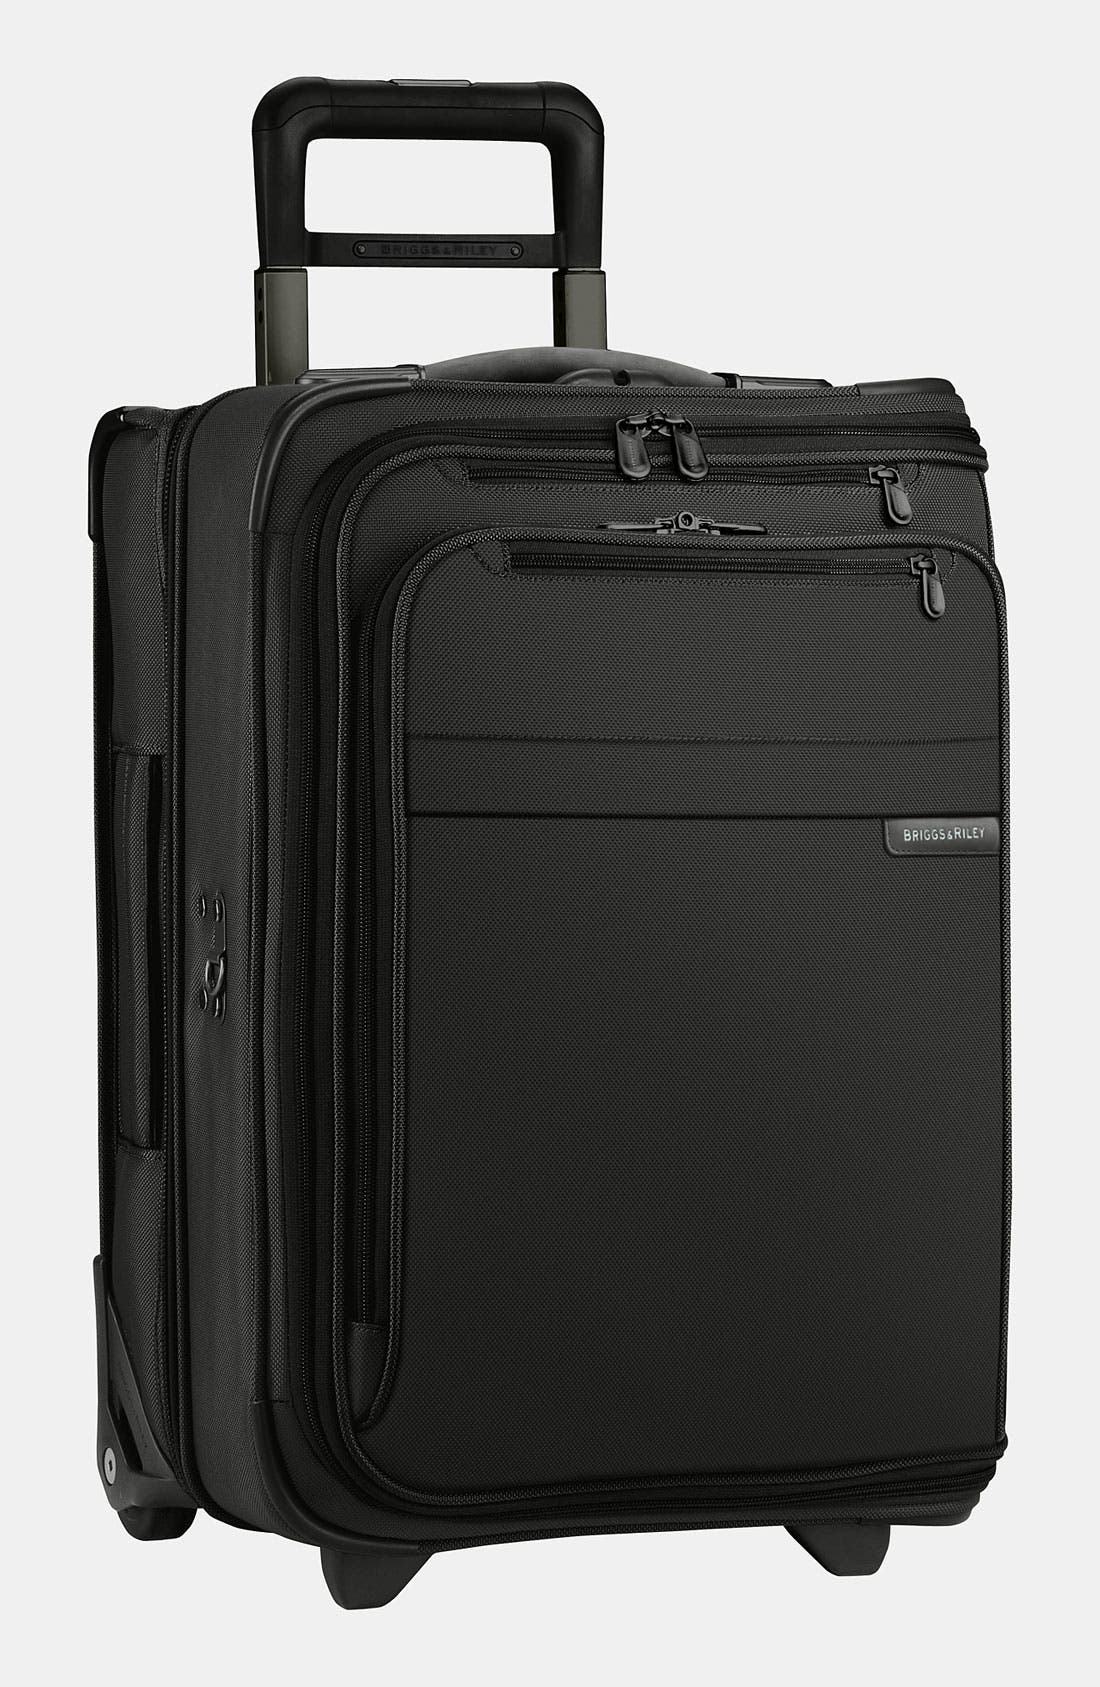 Alternate Image 1 Selected - Briggs & Riley 'Baseline - Domestic' Rolling Carry-On Garment Bag (22 Inch)